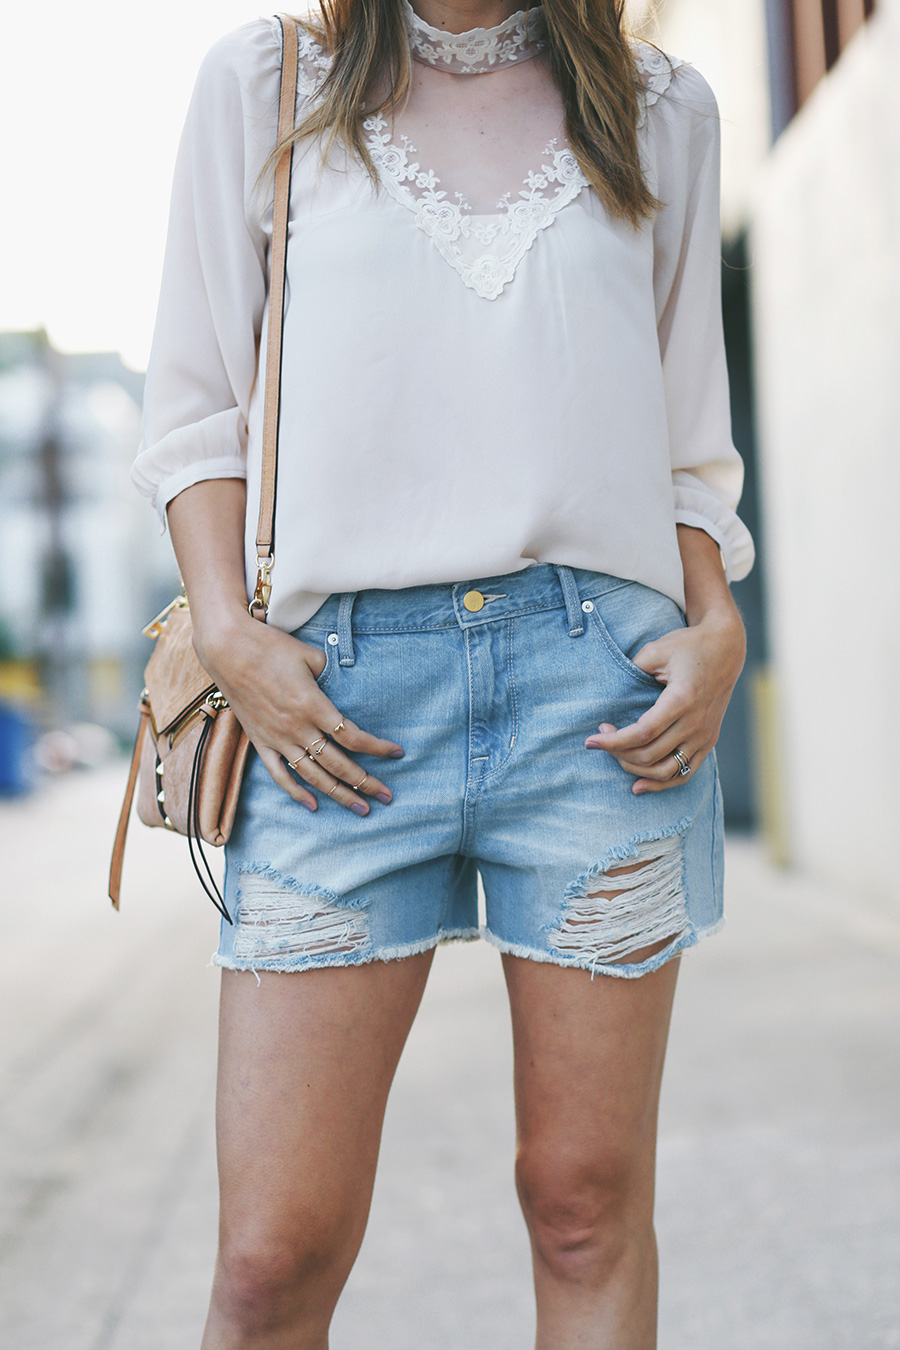 Forever 21 blouse Target shorts Forever 21 sandals PD Paola rings Botkier crossbody 3